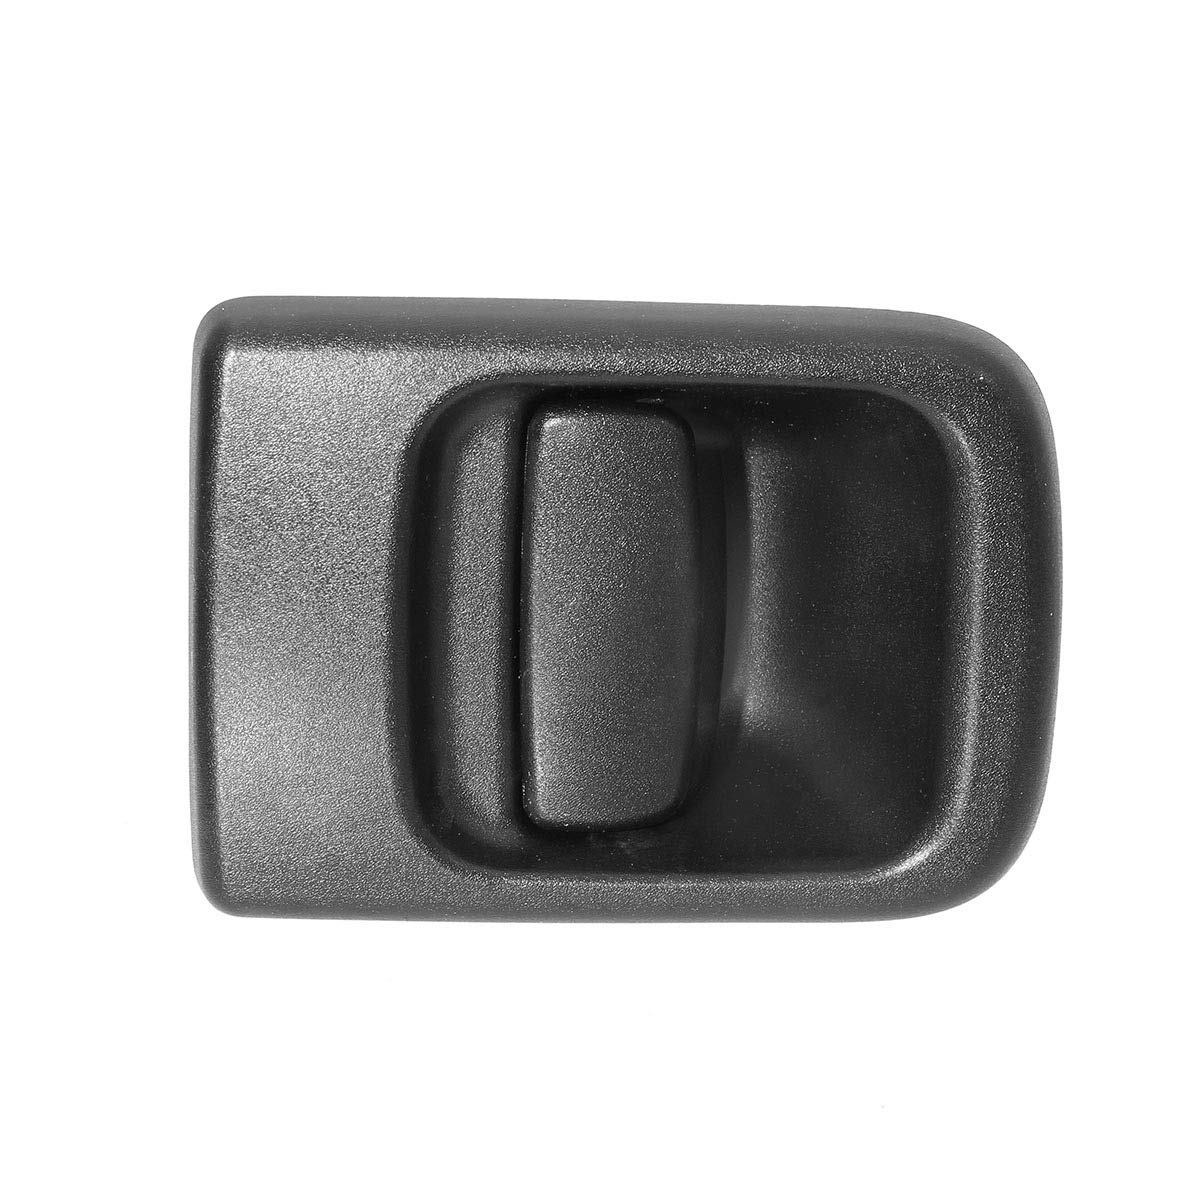 BEESCLOVER Rear Hatch Door Handle Outside for Renault Master MK2 Vauxhall Movano Nissan